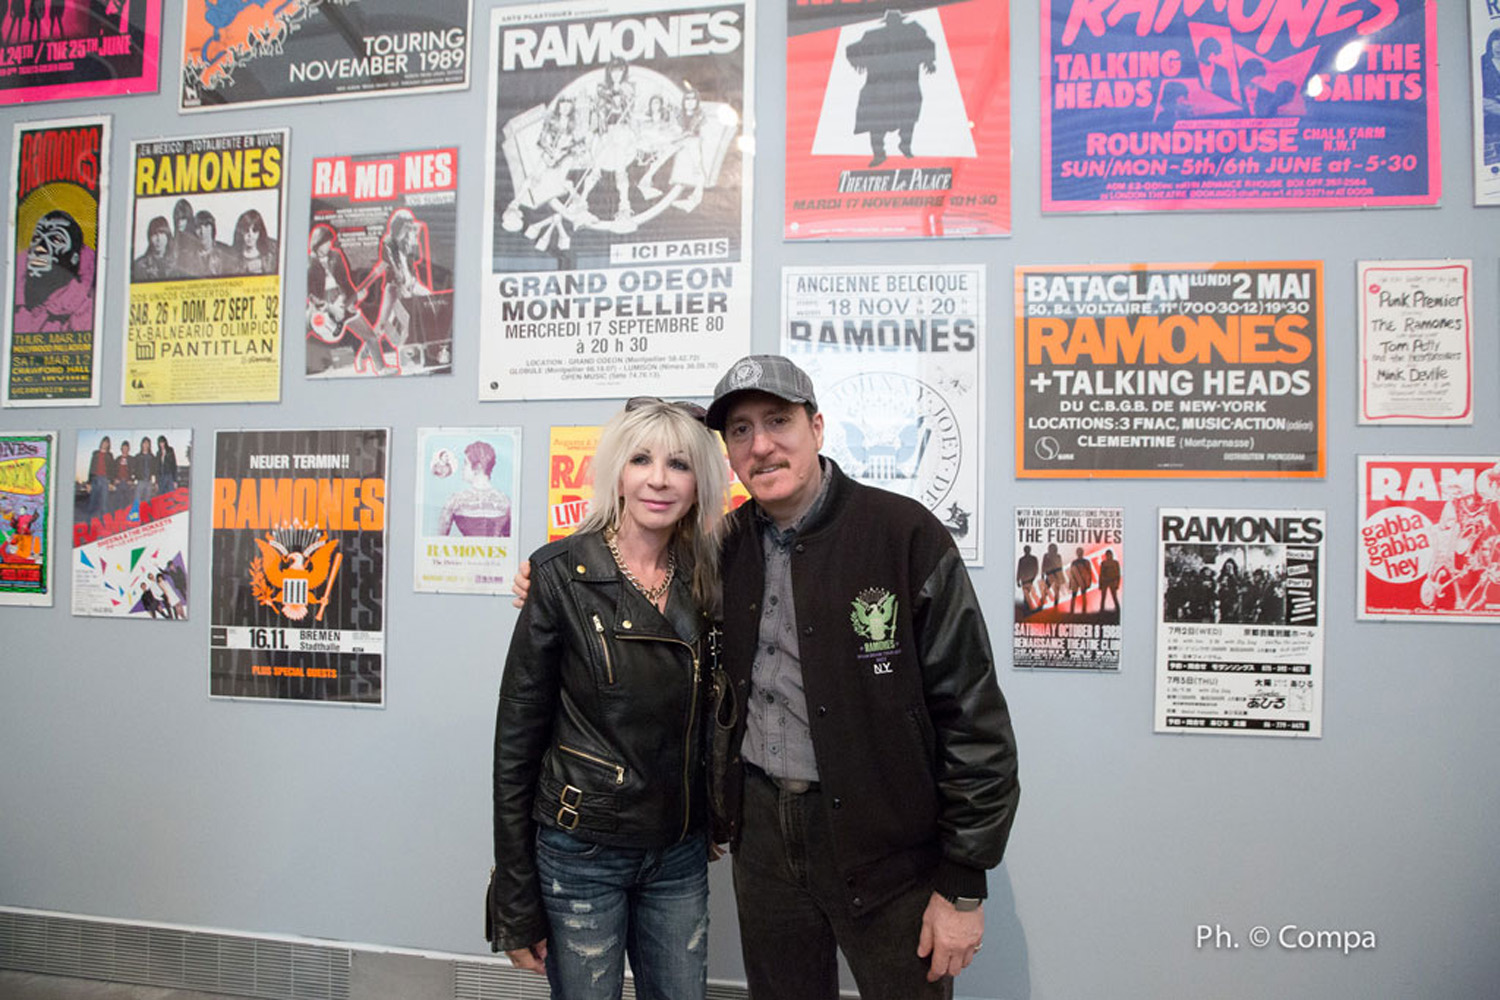 Vera Ramone King (Dee Dee Ramone's first wife) and Monte A. Melnick (Ramones tour manager) in front of a display of Ramones tour posters from Melnick's collection. Photo by Andrea Compa.